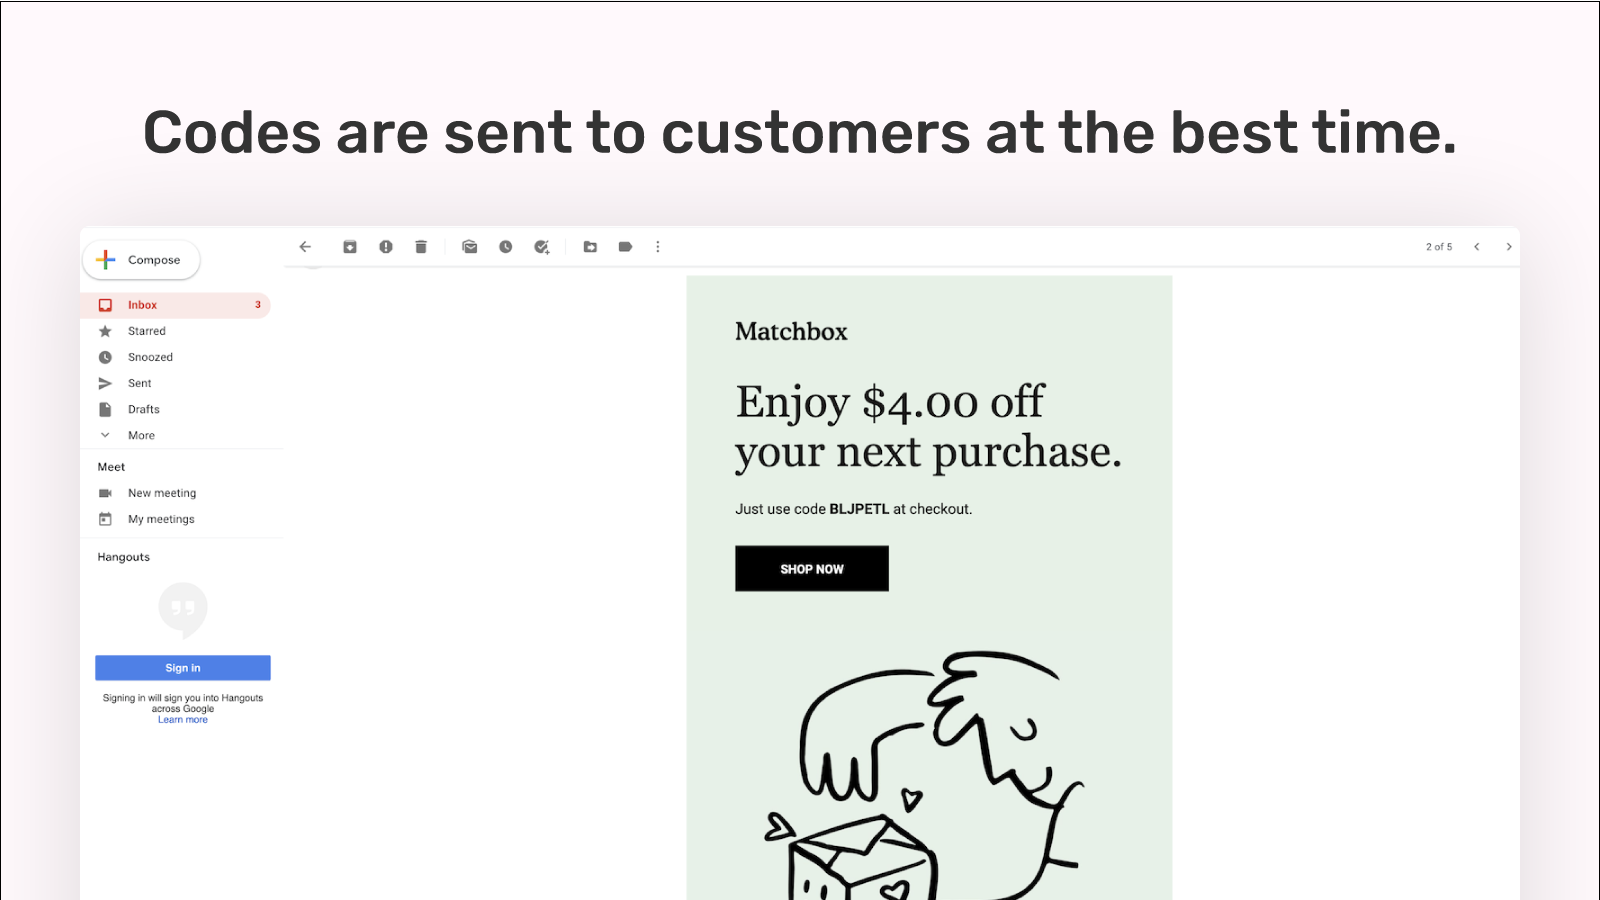 Codes get sent to customers at the right time.